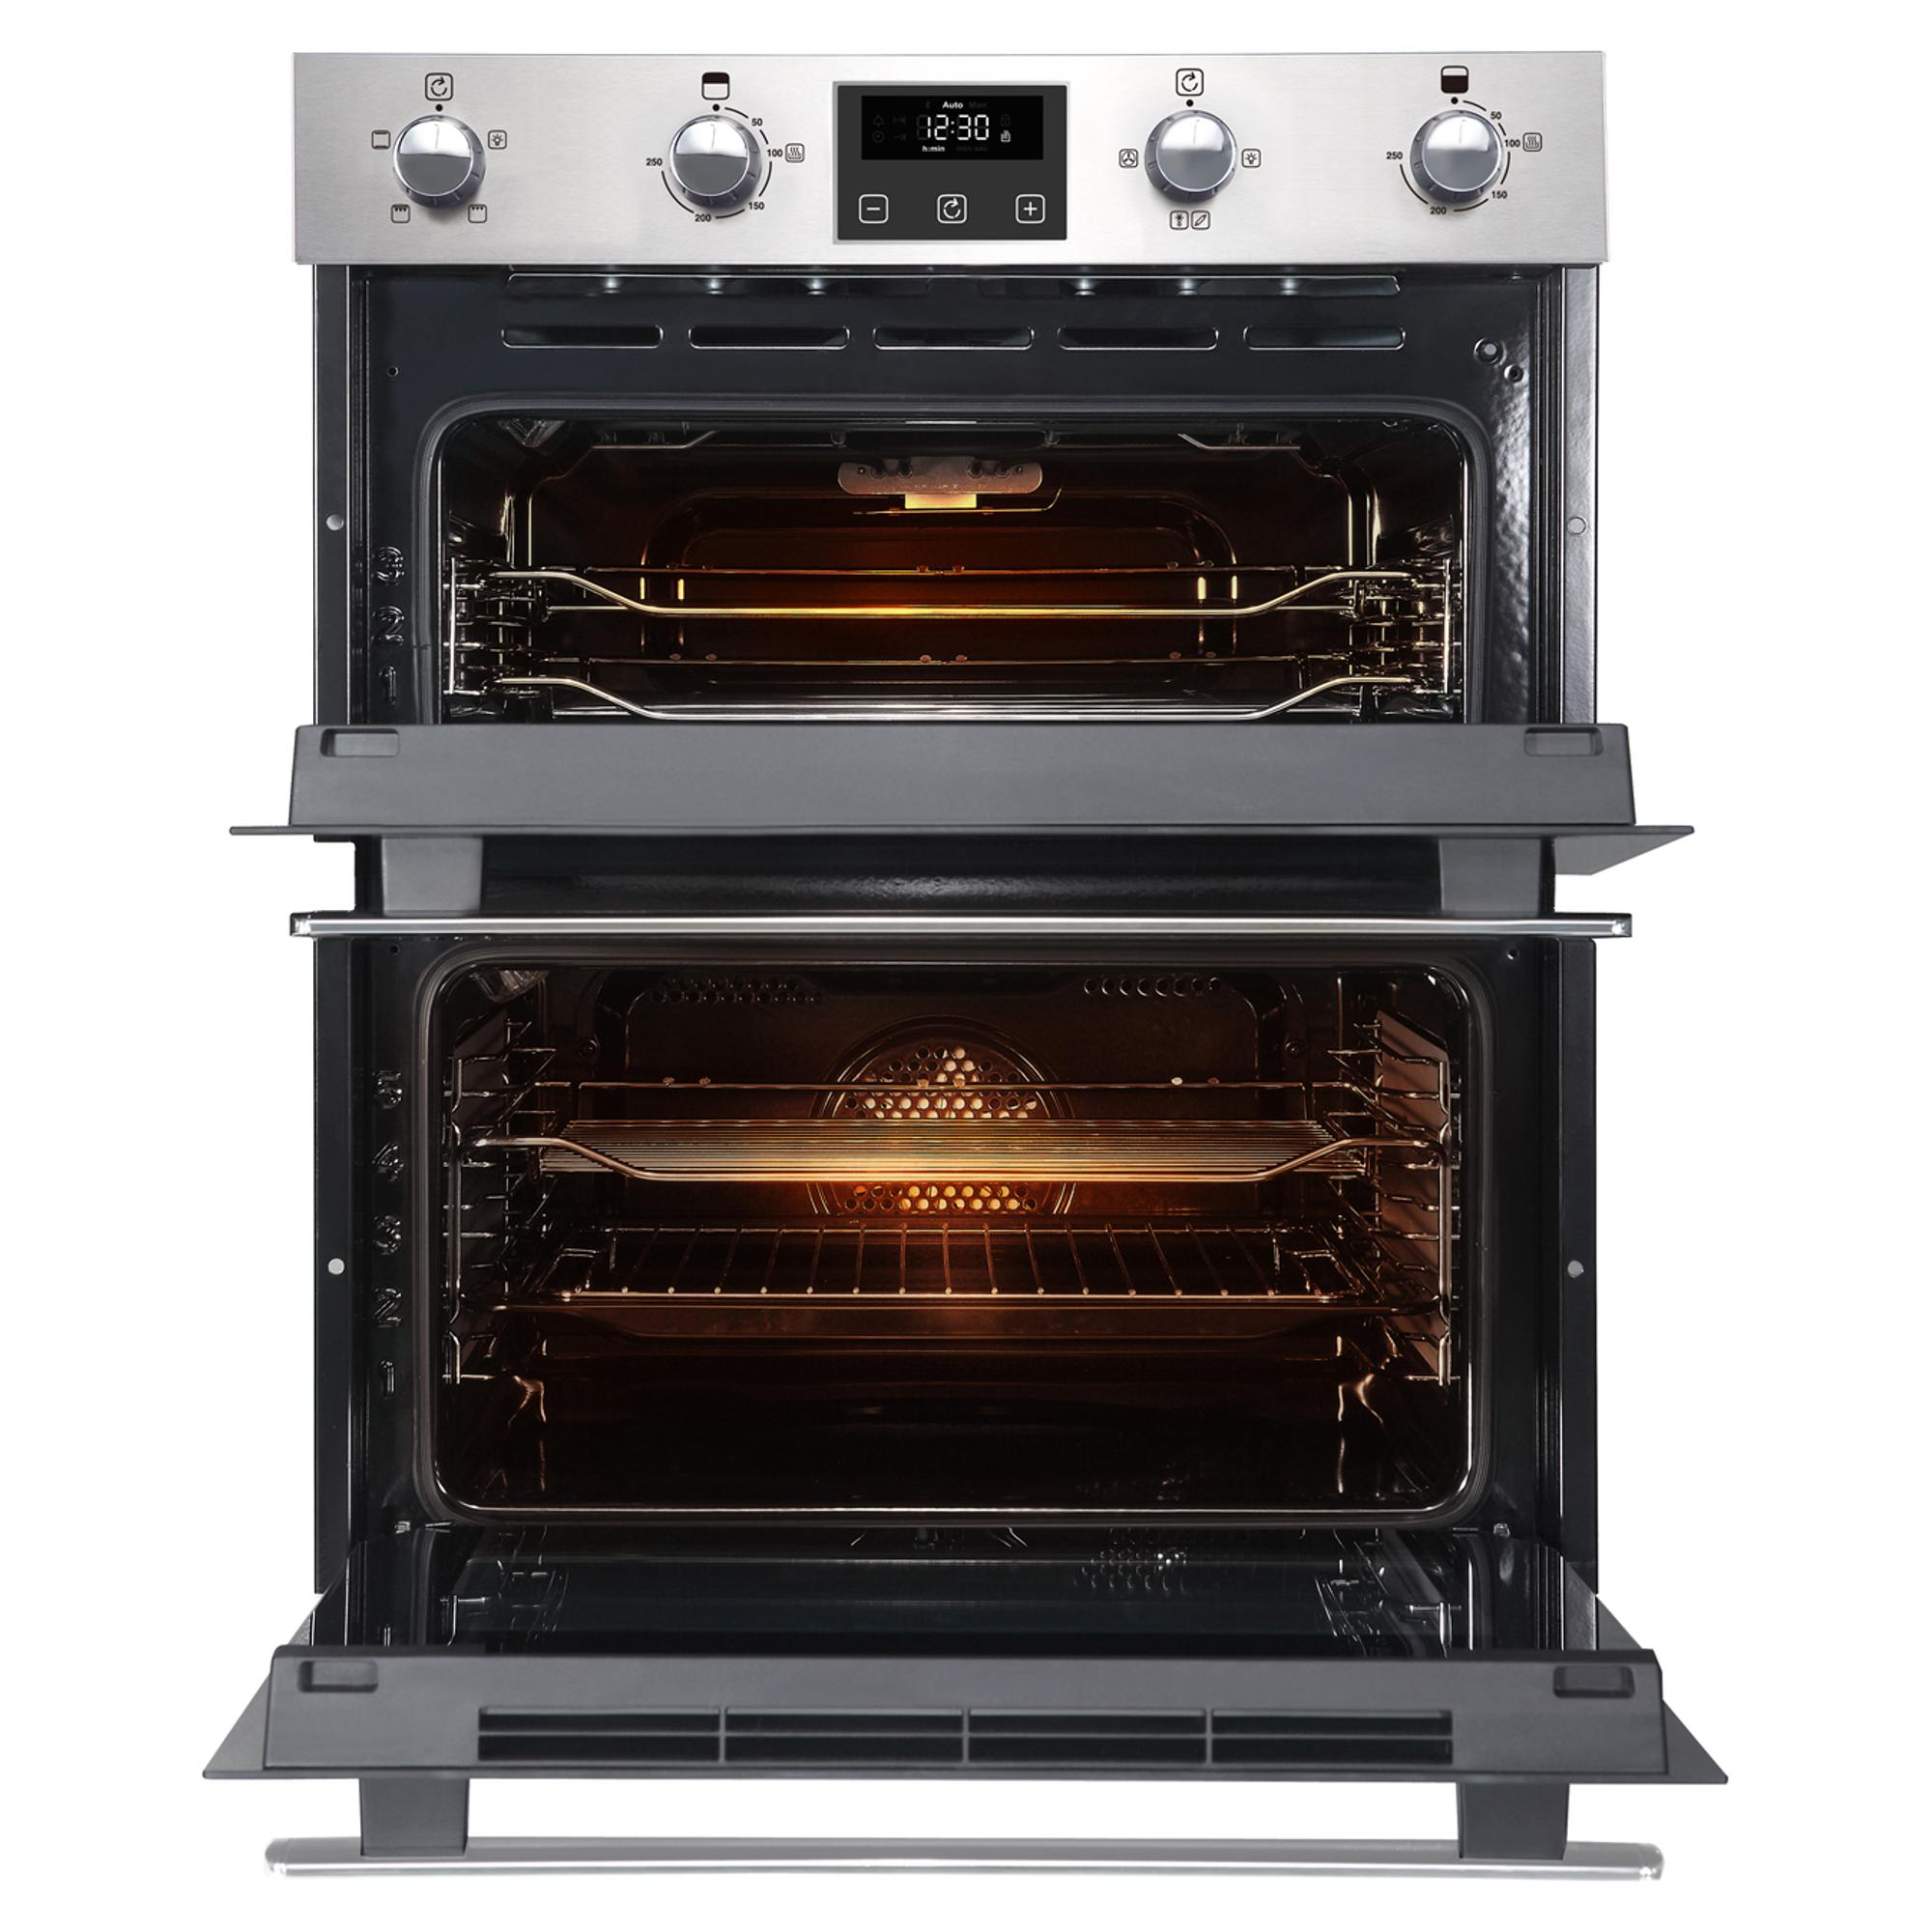 Belling BI702FPSTA Built Under Double Oven